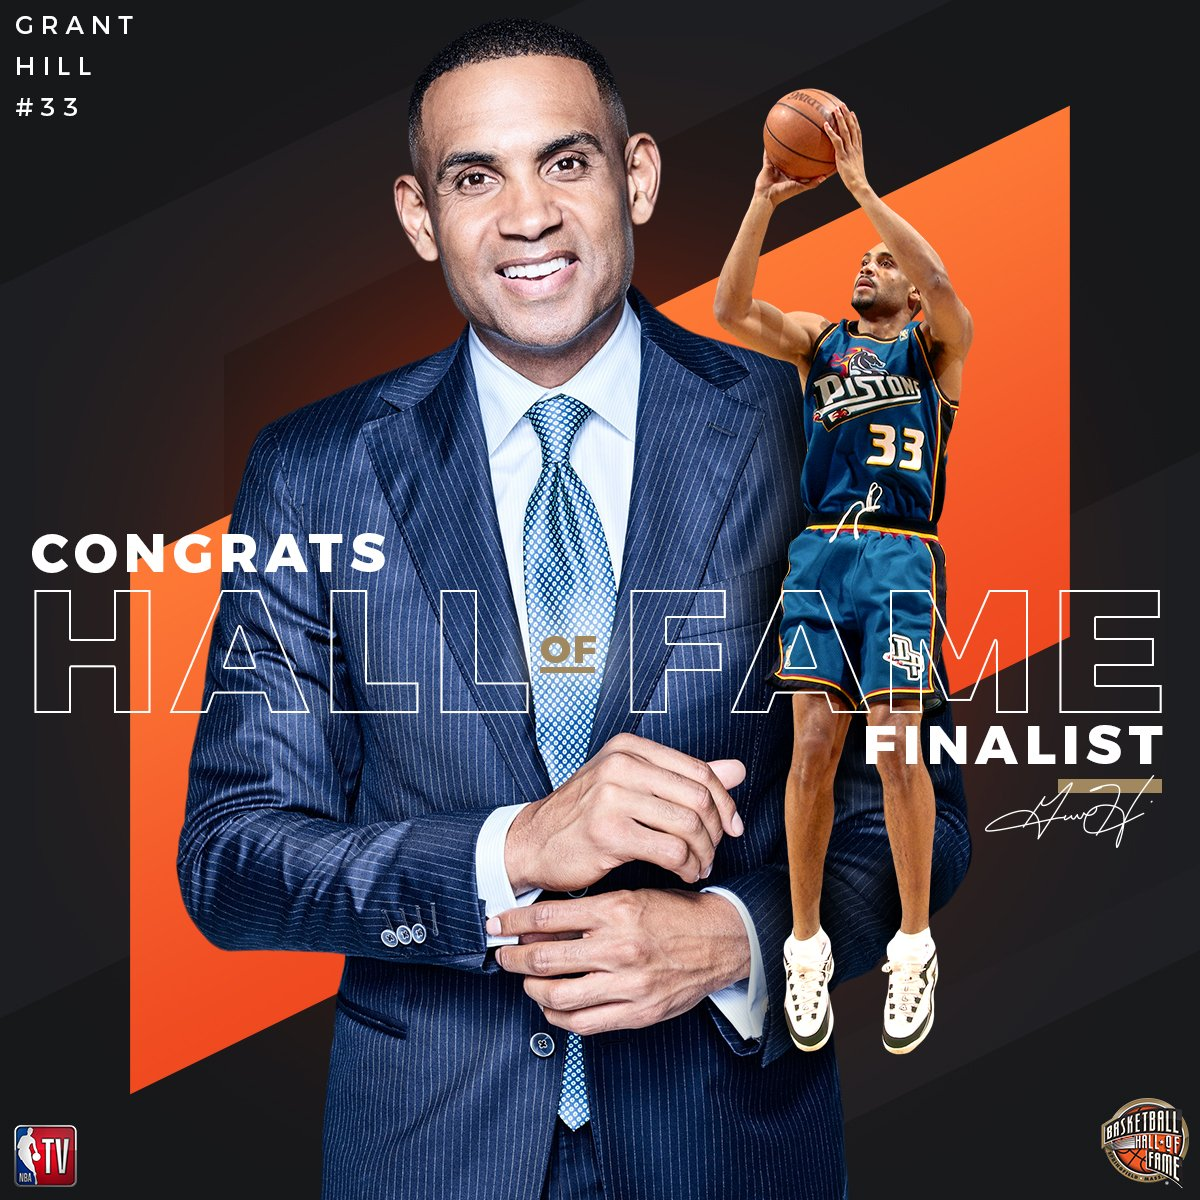 RT @NBATV: The Turner Sports family congratulates @realgranthill33 on being named a @Hoophall #18HoopClass Finalist! https://t.co/YxipkdODGH